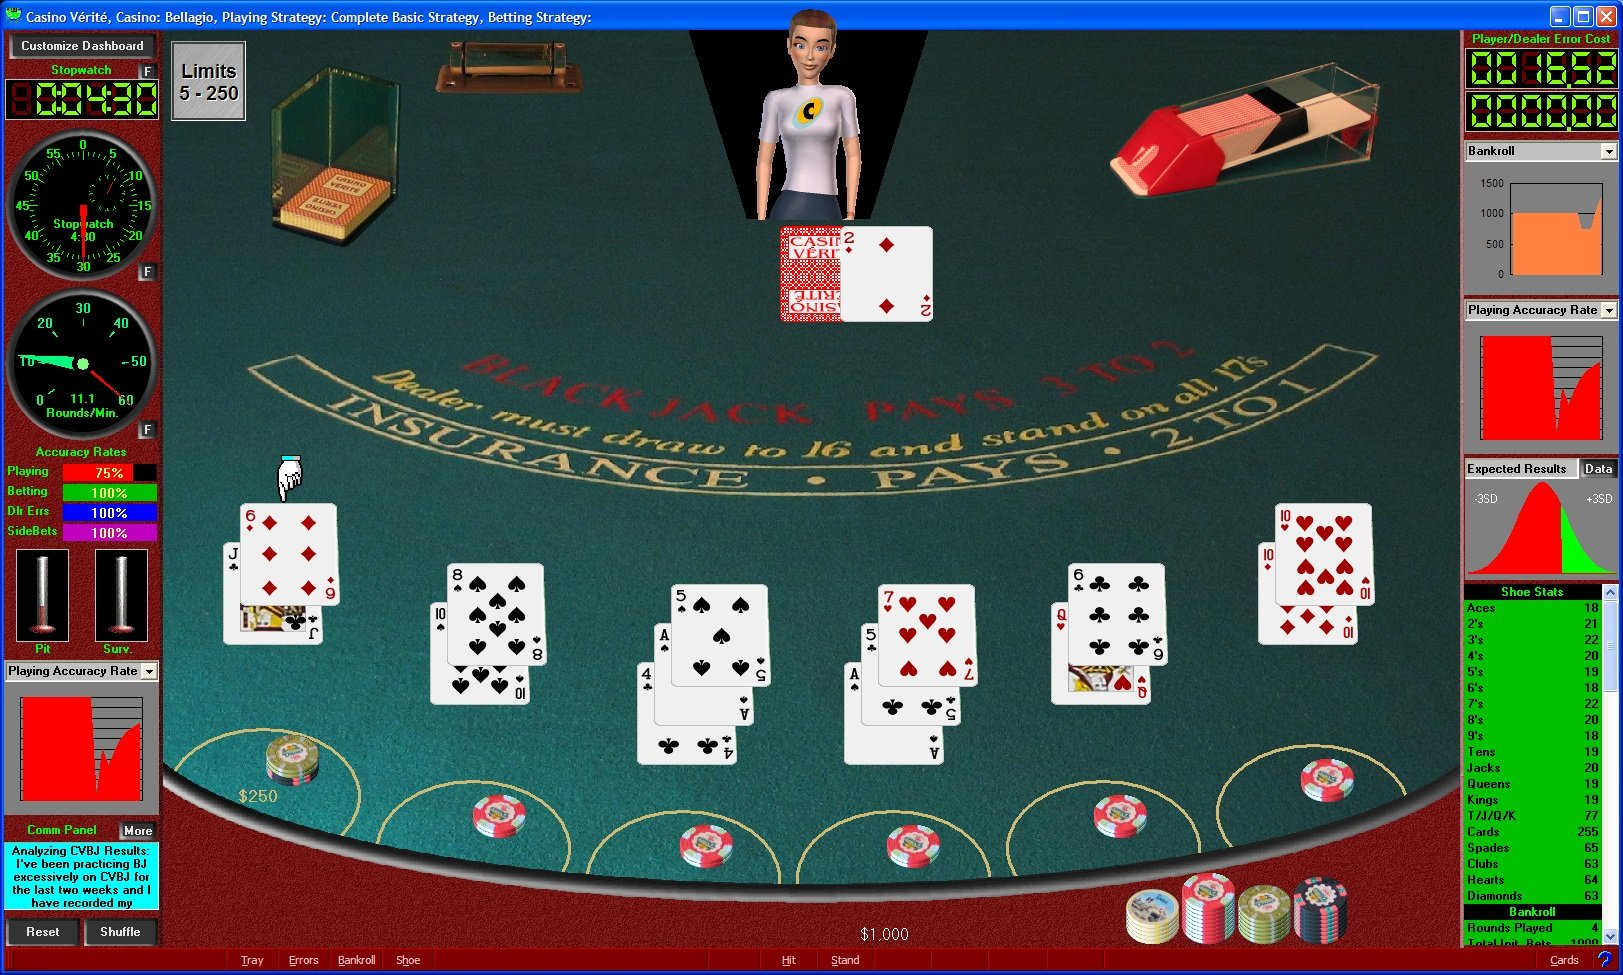 Training Amateur Gambler - 583867